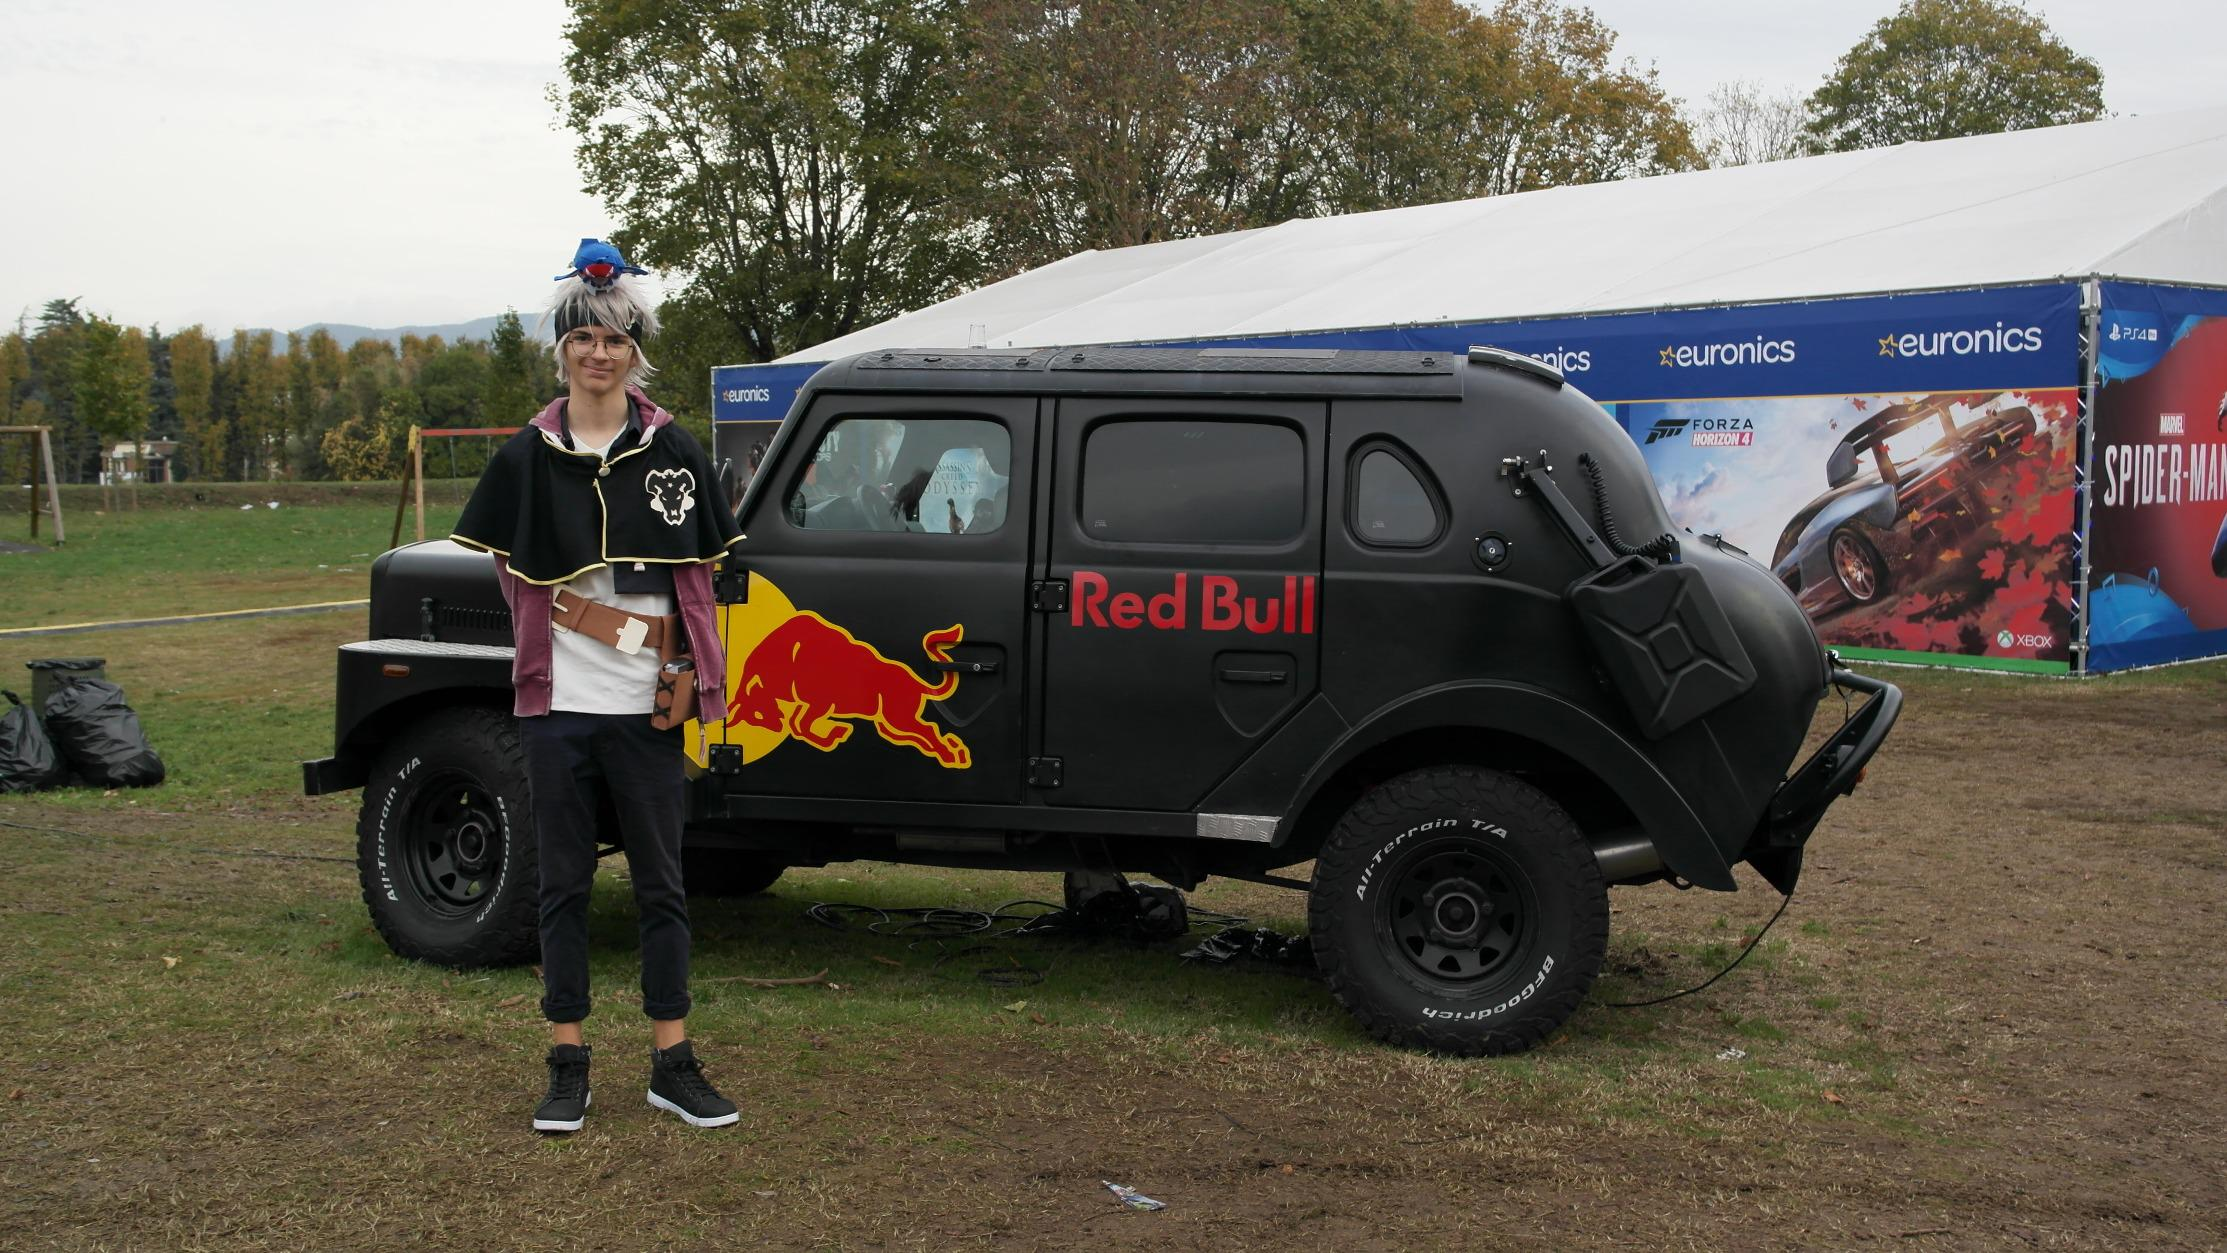 Red Bull Black Car